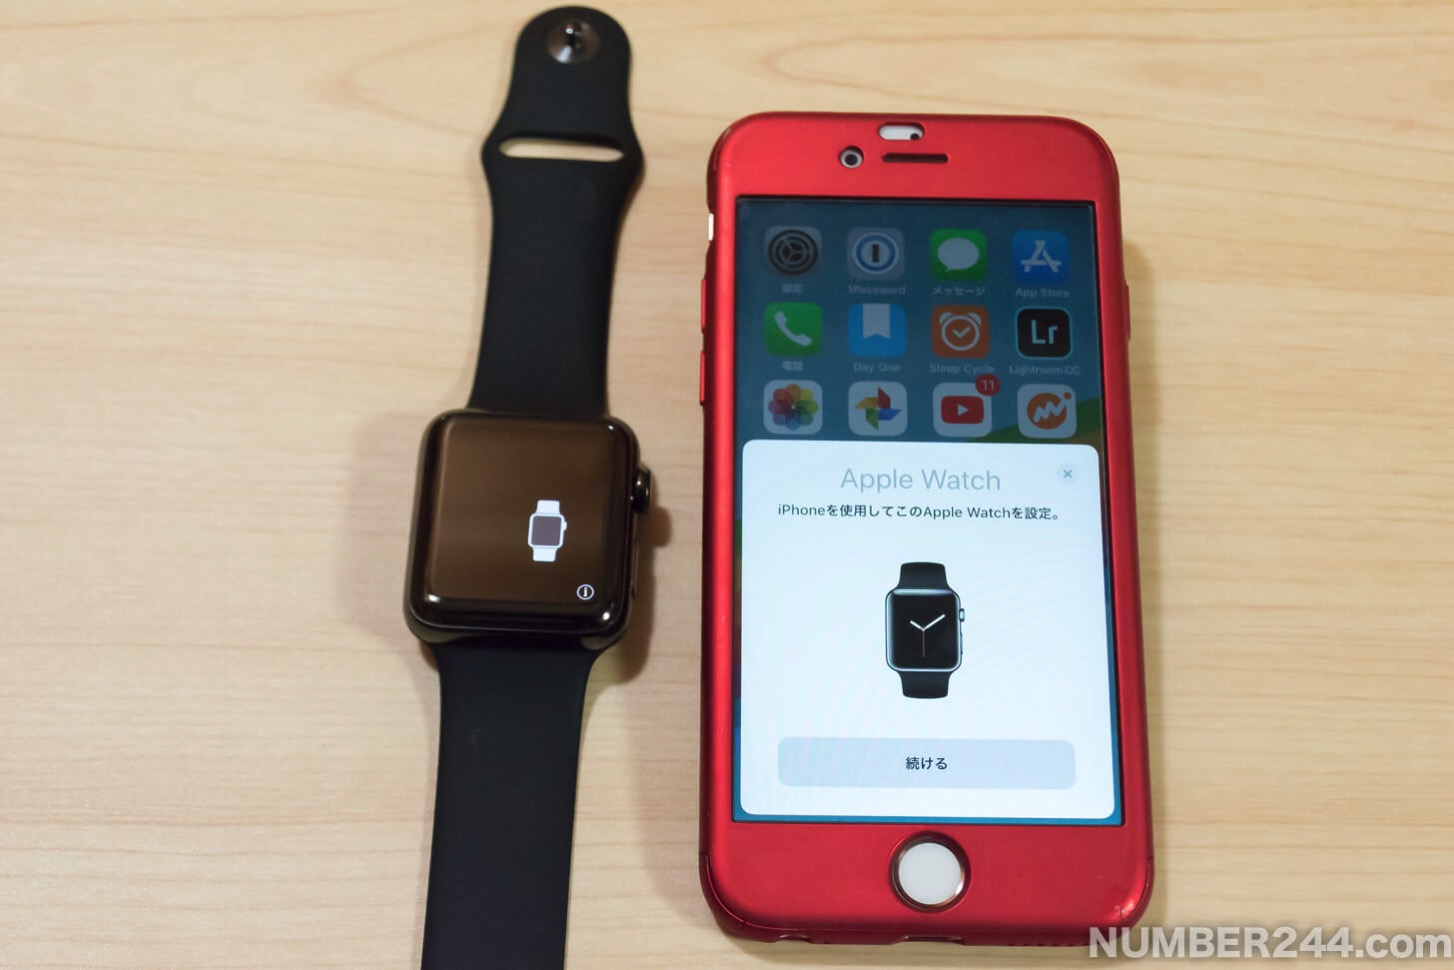 Initial setting of Apple Watch 2